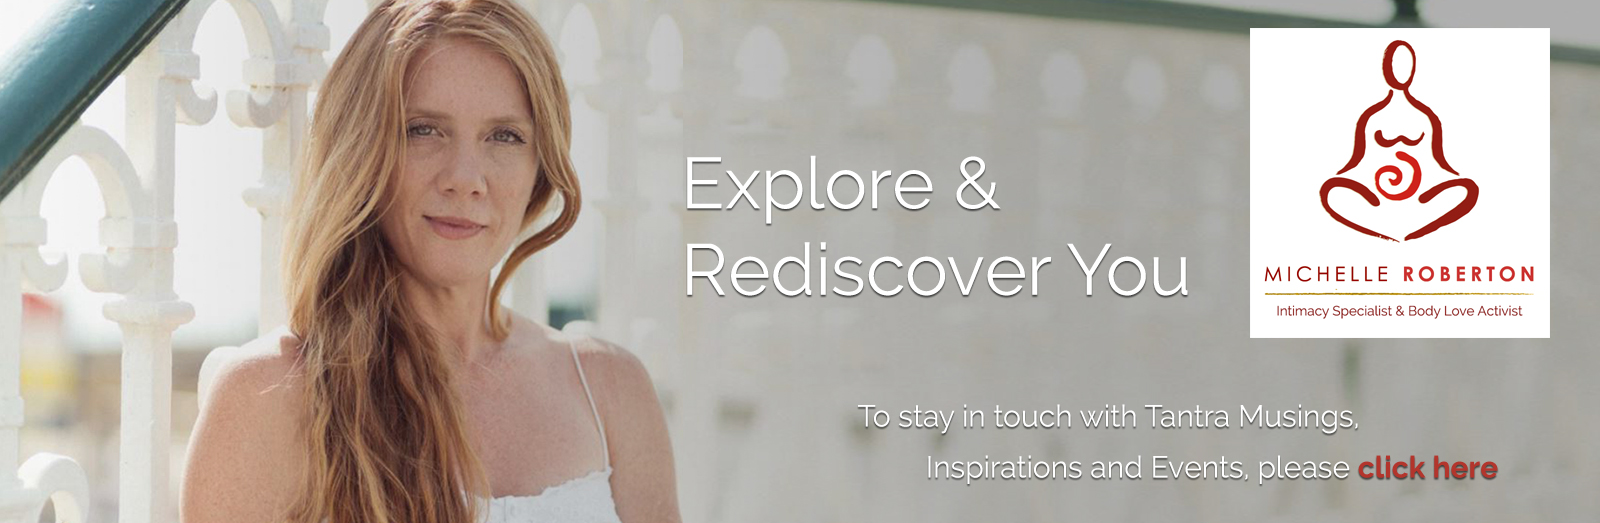 Explore And Rediscover You